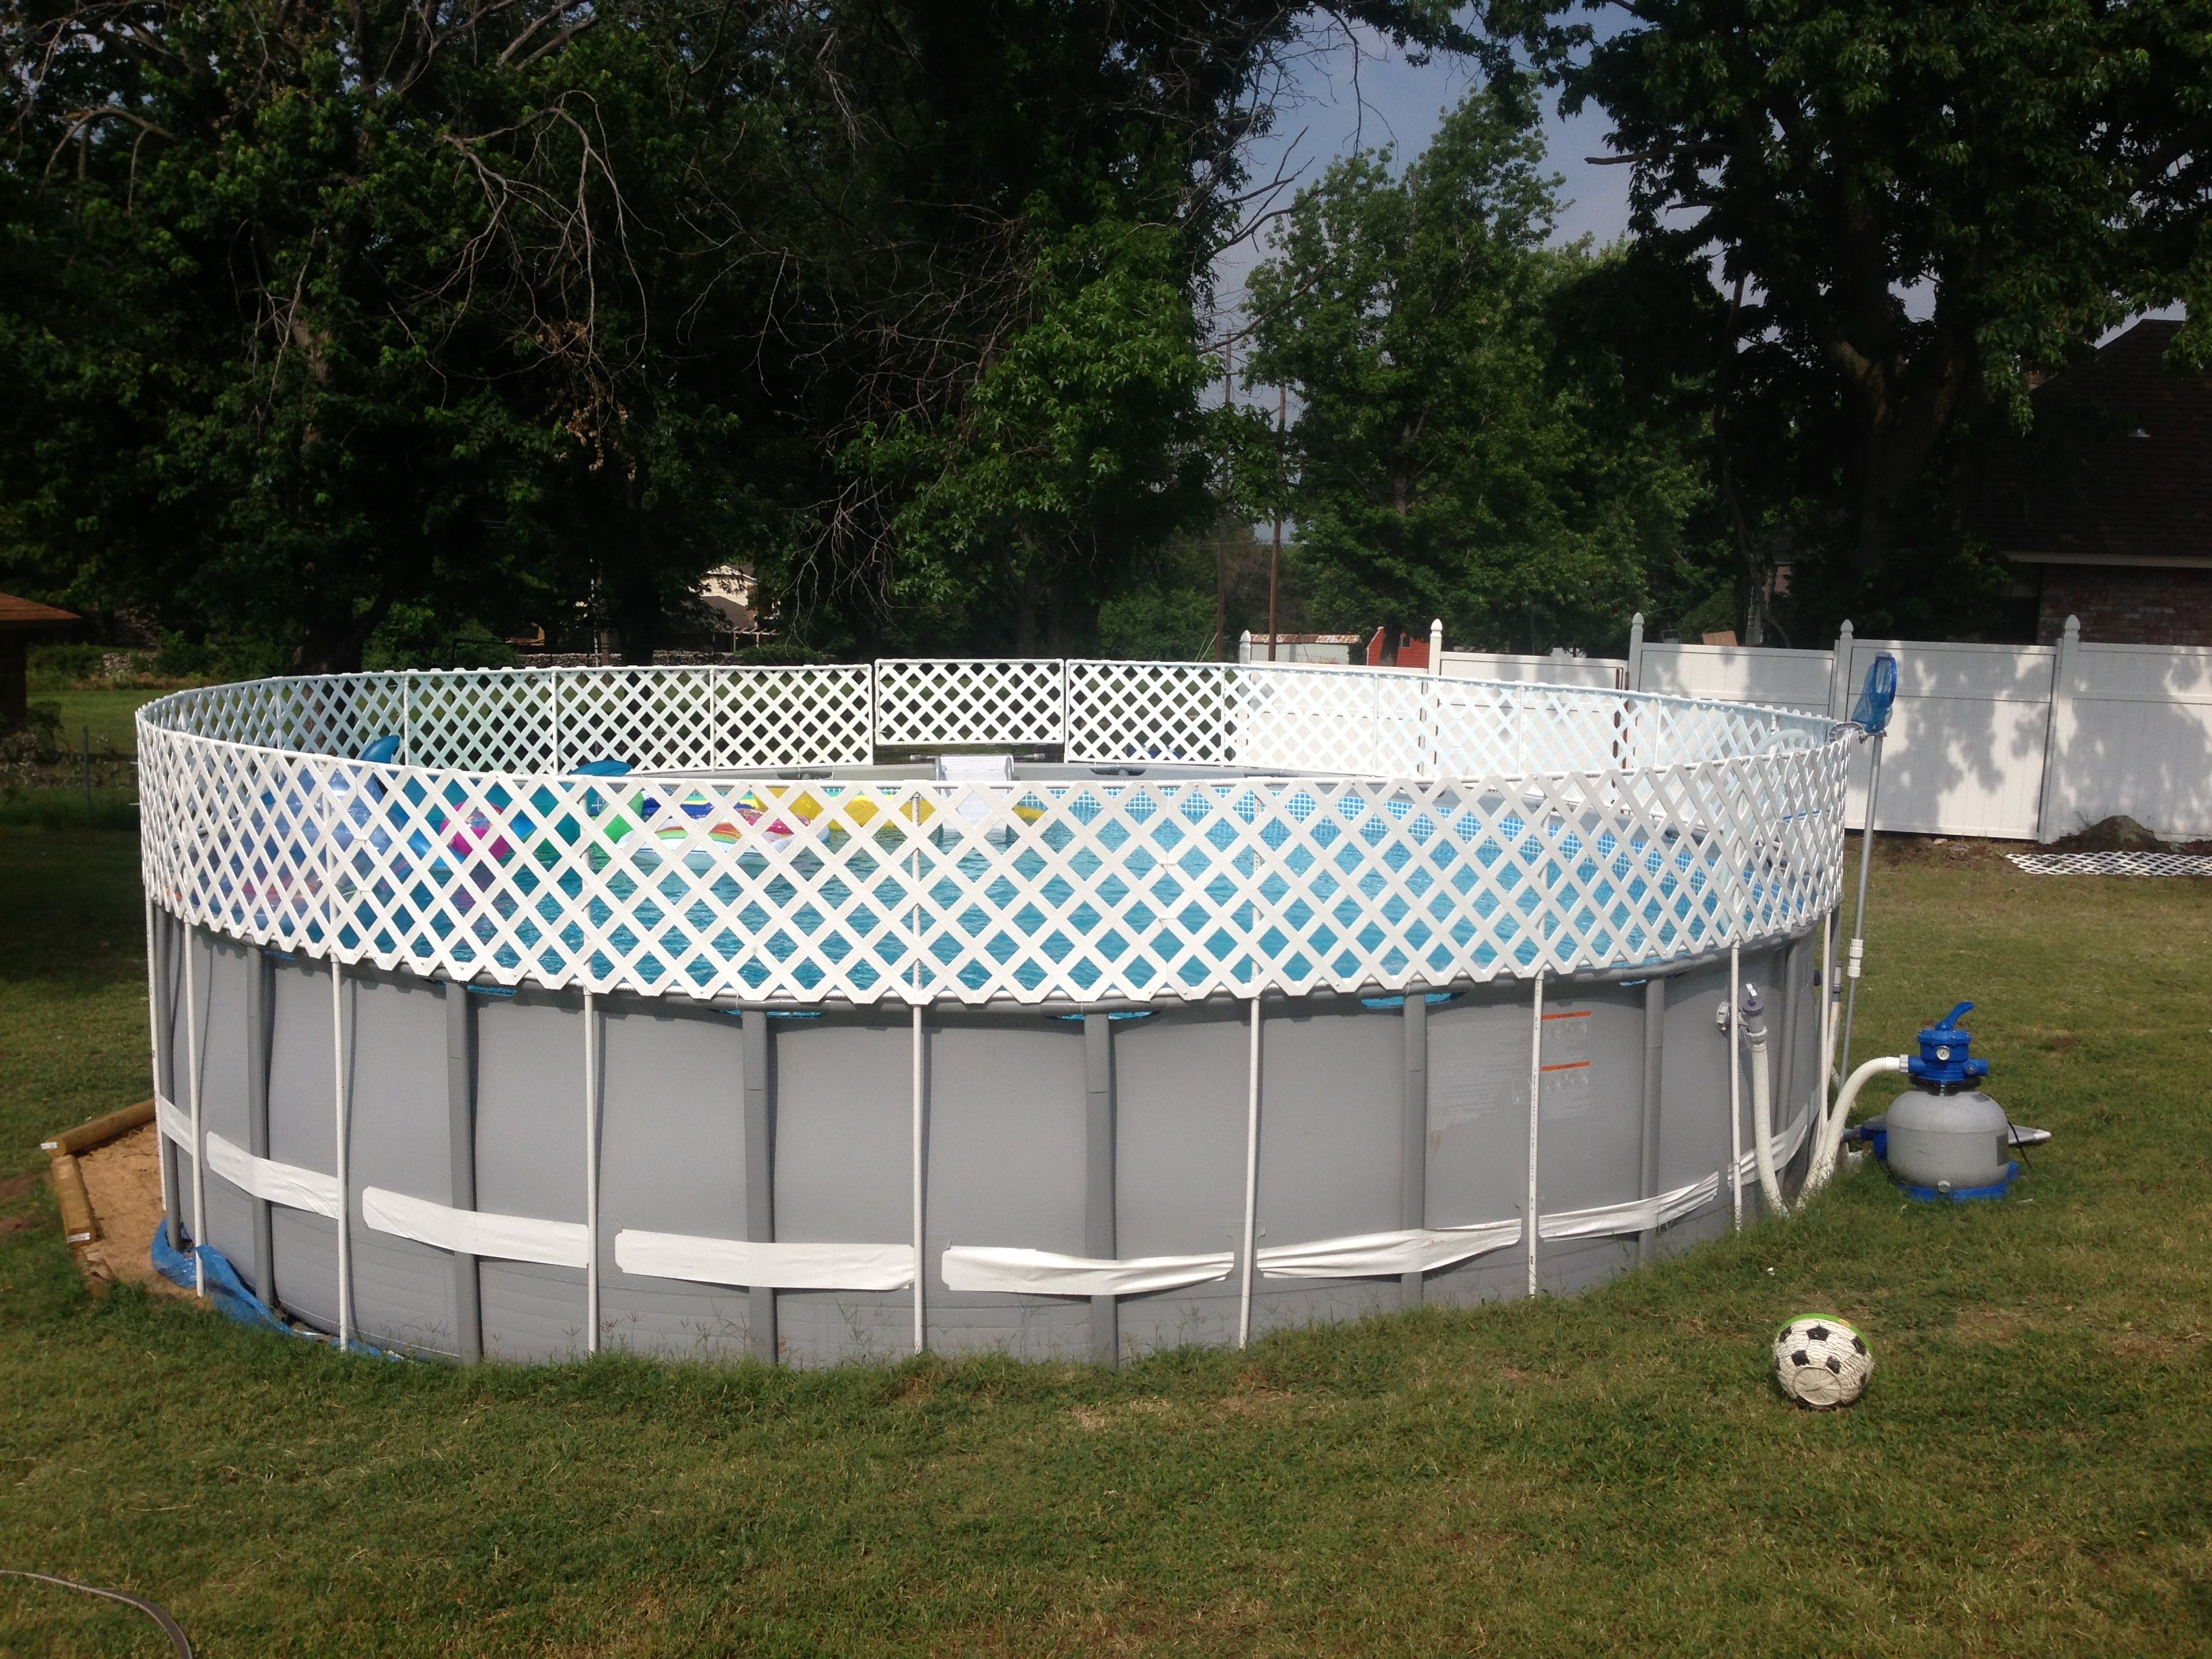 Above Ground Pool Fence Diy 1 2inch Pvc Pipe And White Lattice